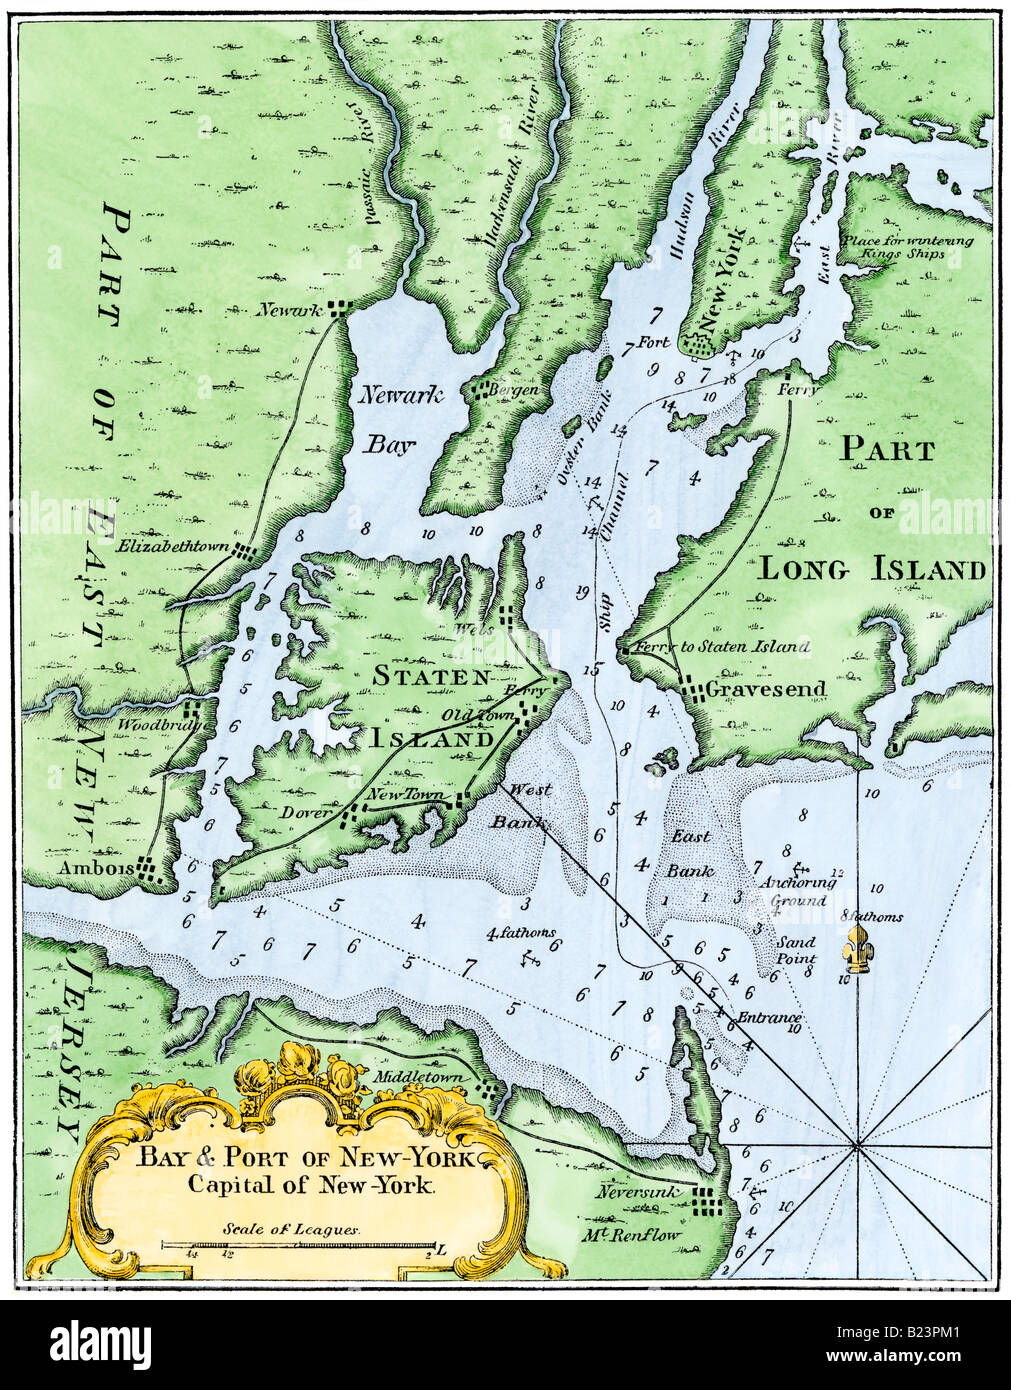 Map Of New York You Can See A Map Of Many Places On The List On - Map of new york ellis island